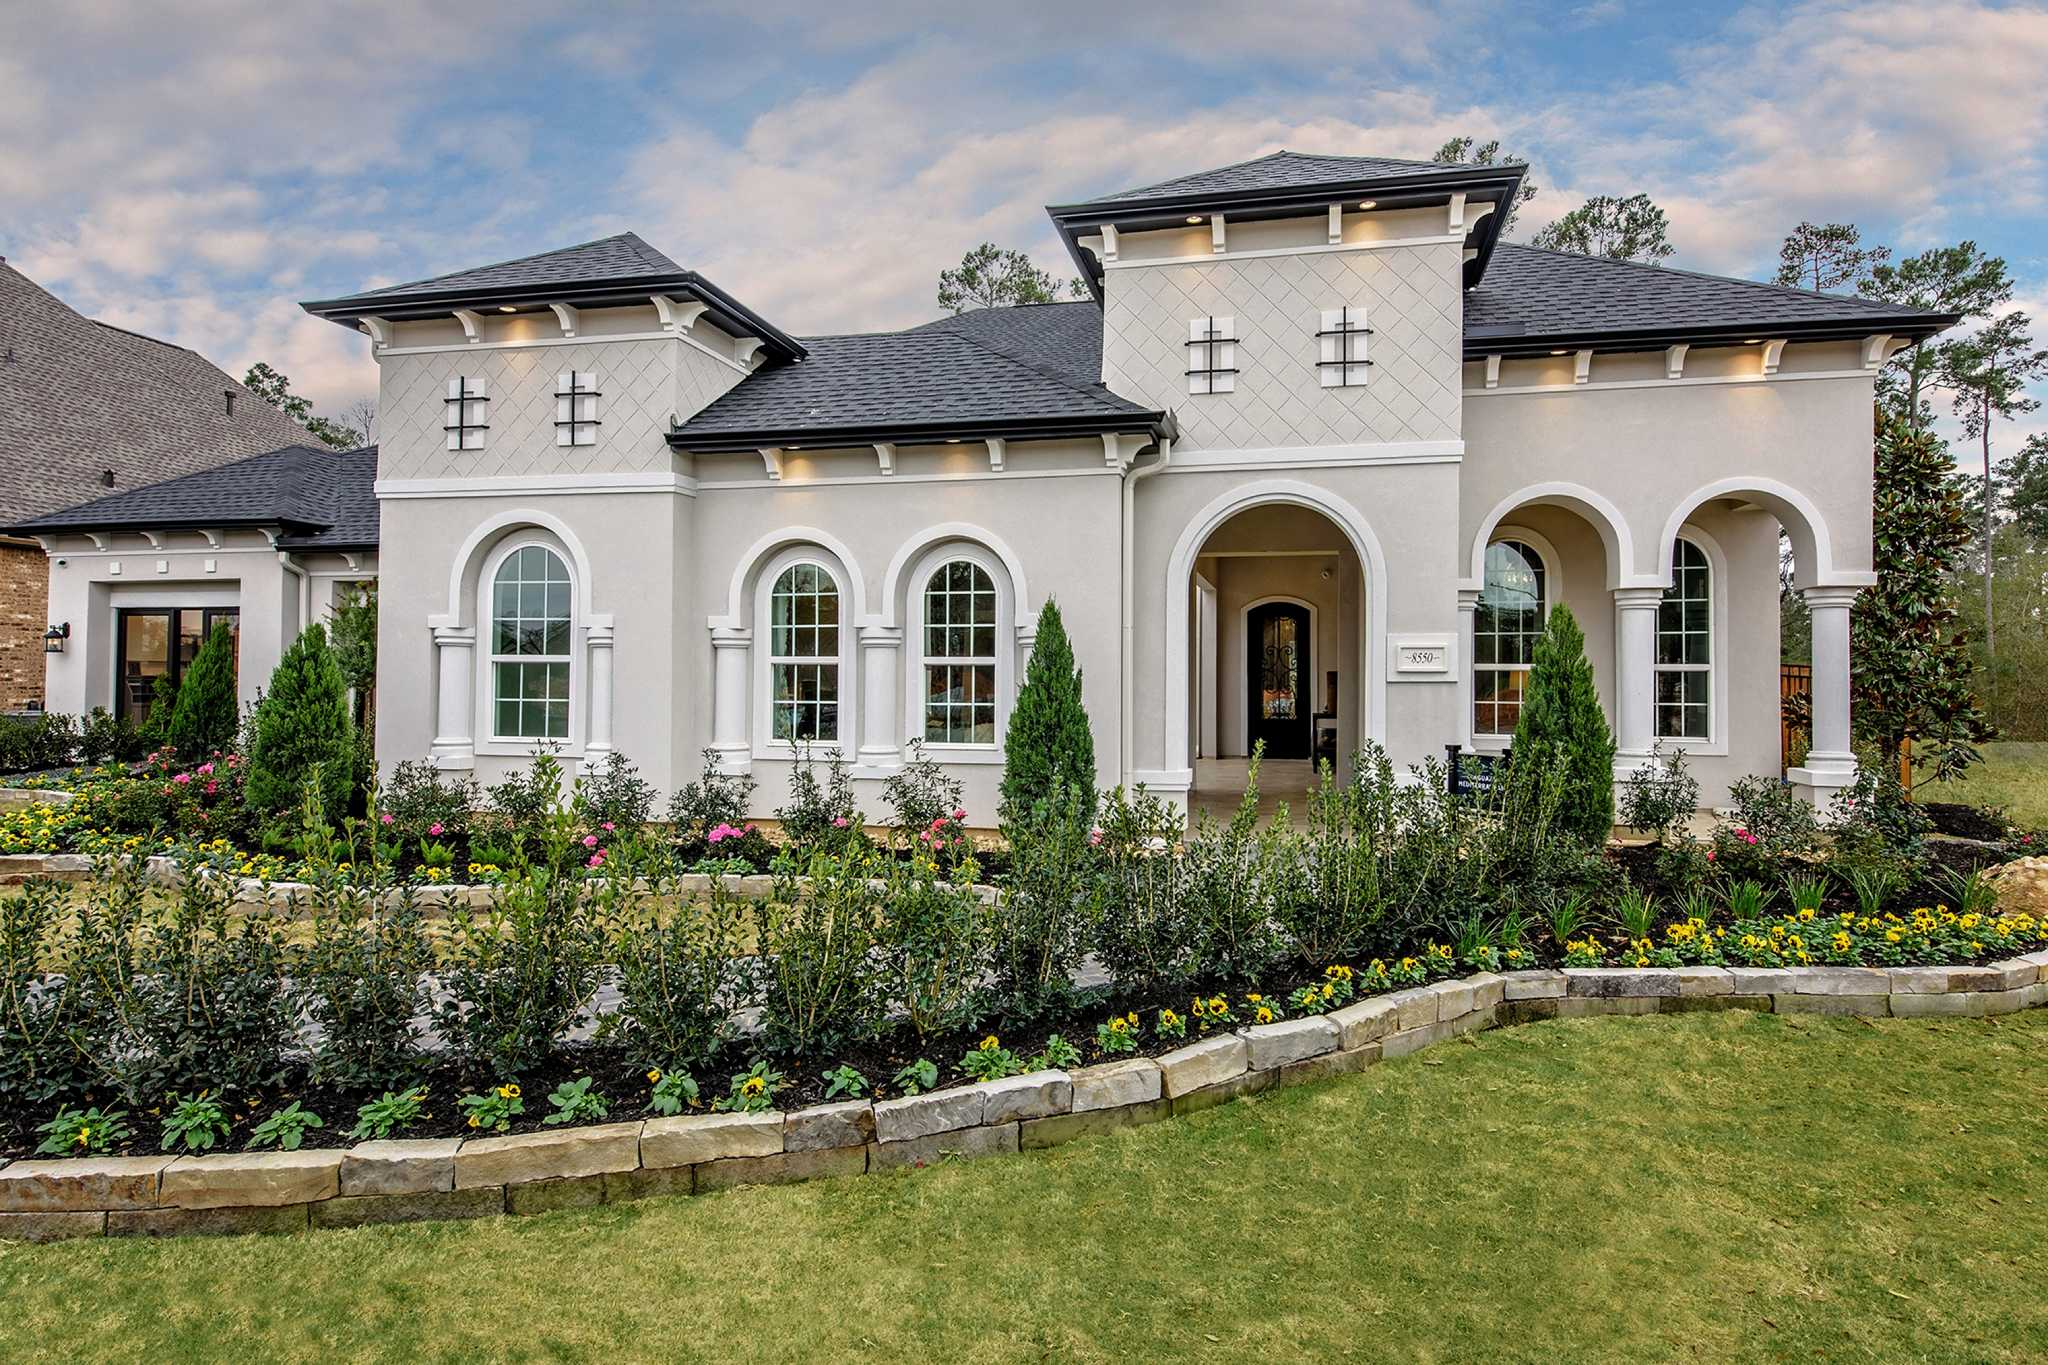 Toll brothers showcases new model homes houston chronicle - Model homes near me ...